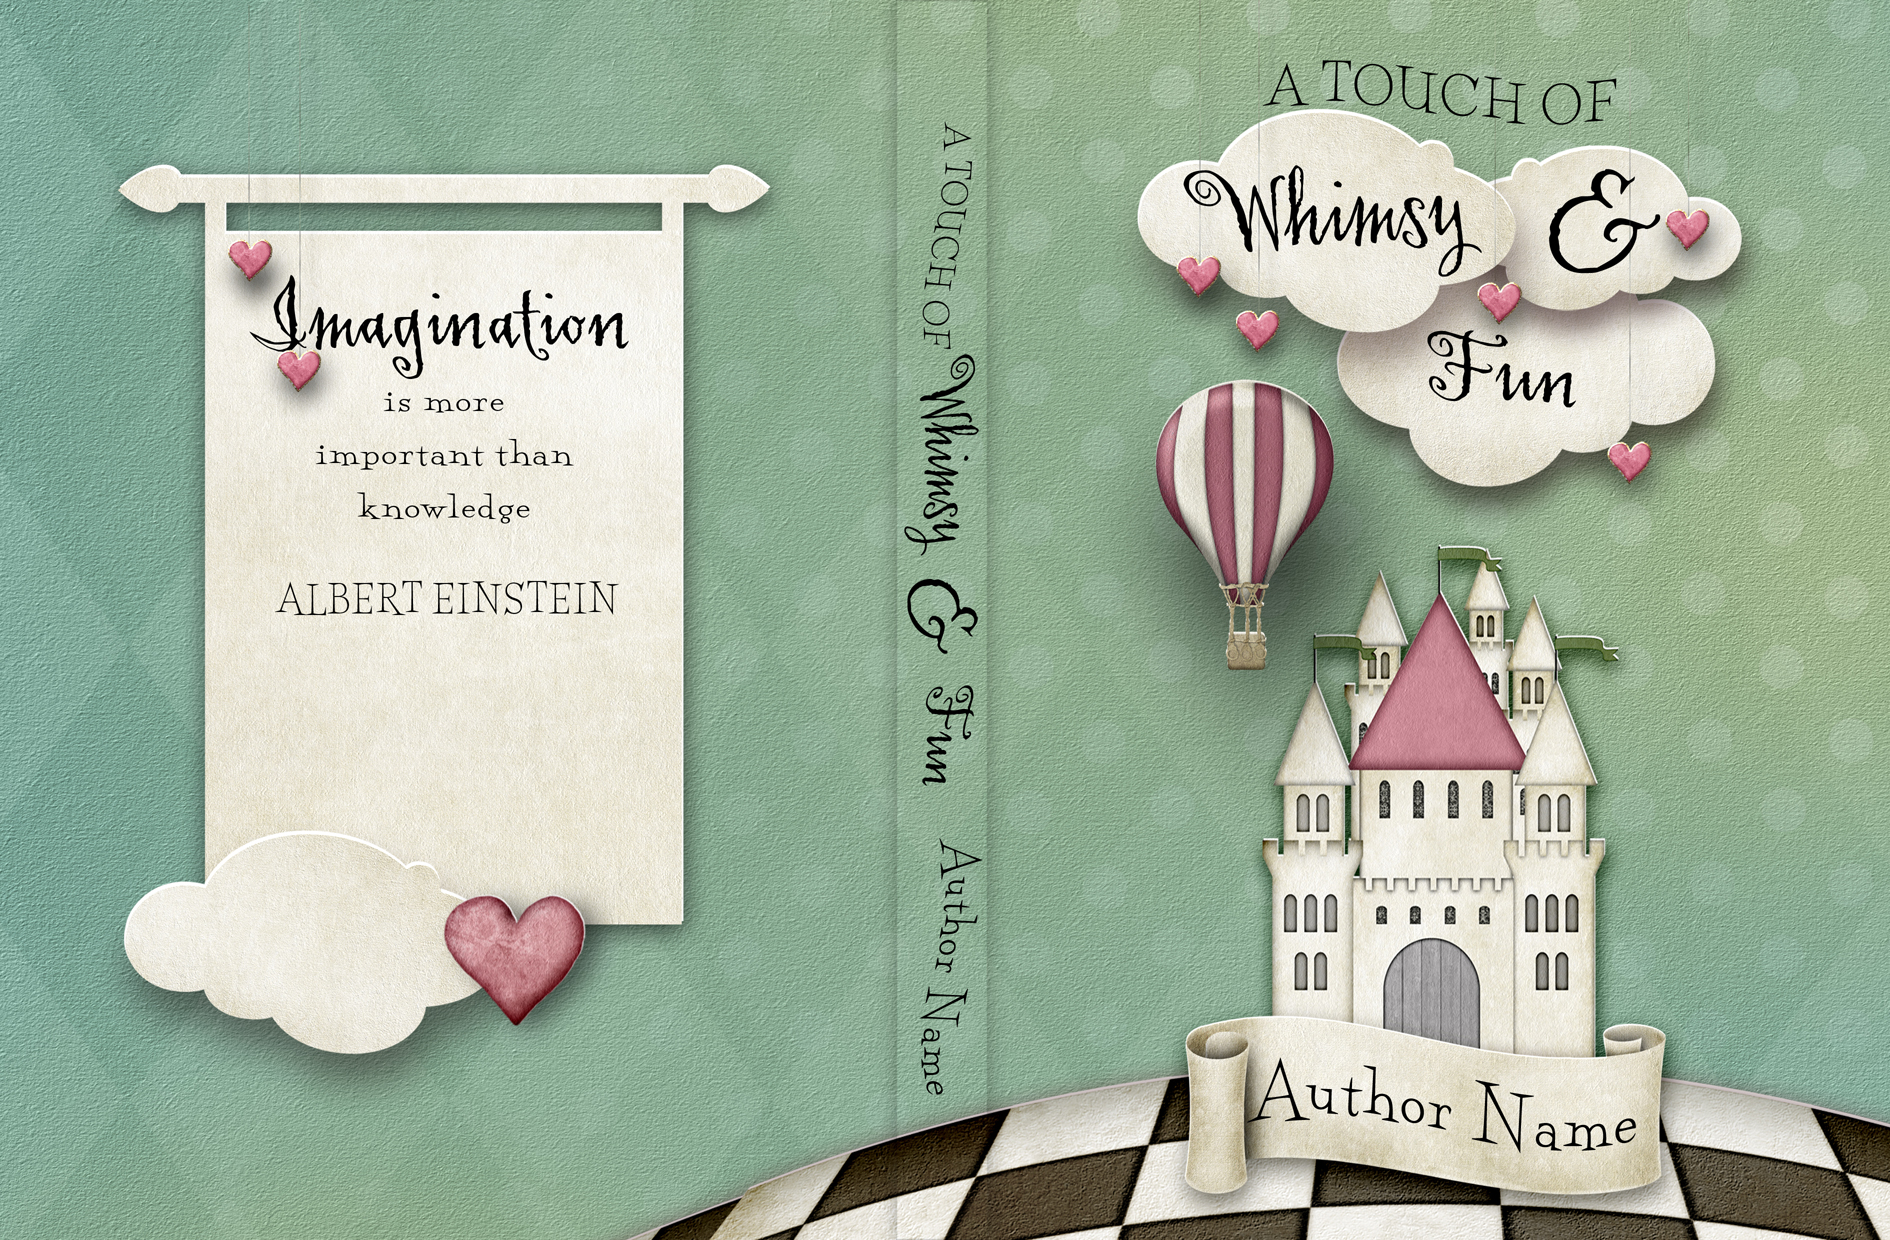 Kids Book Cover A Touch Of Whimsy Fun The Book Cover Designer